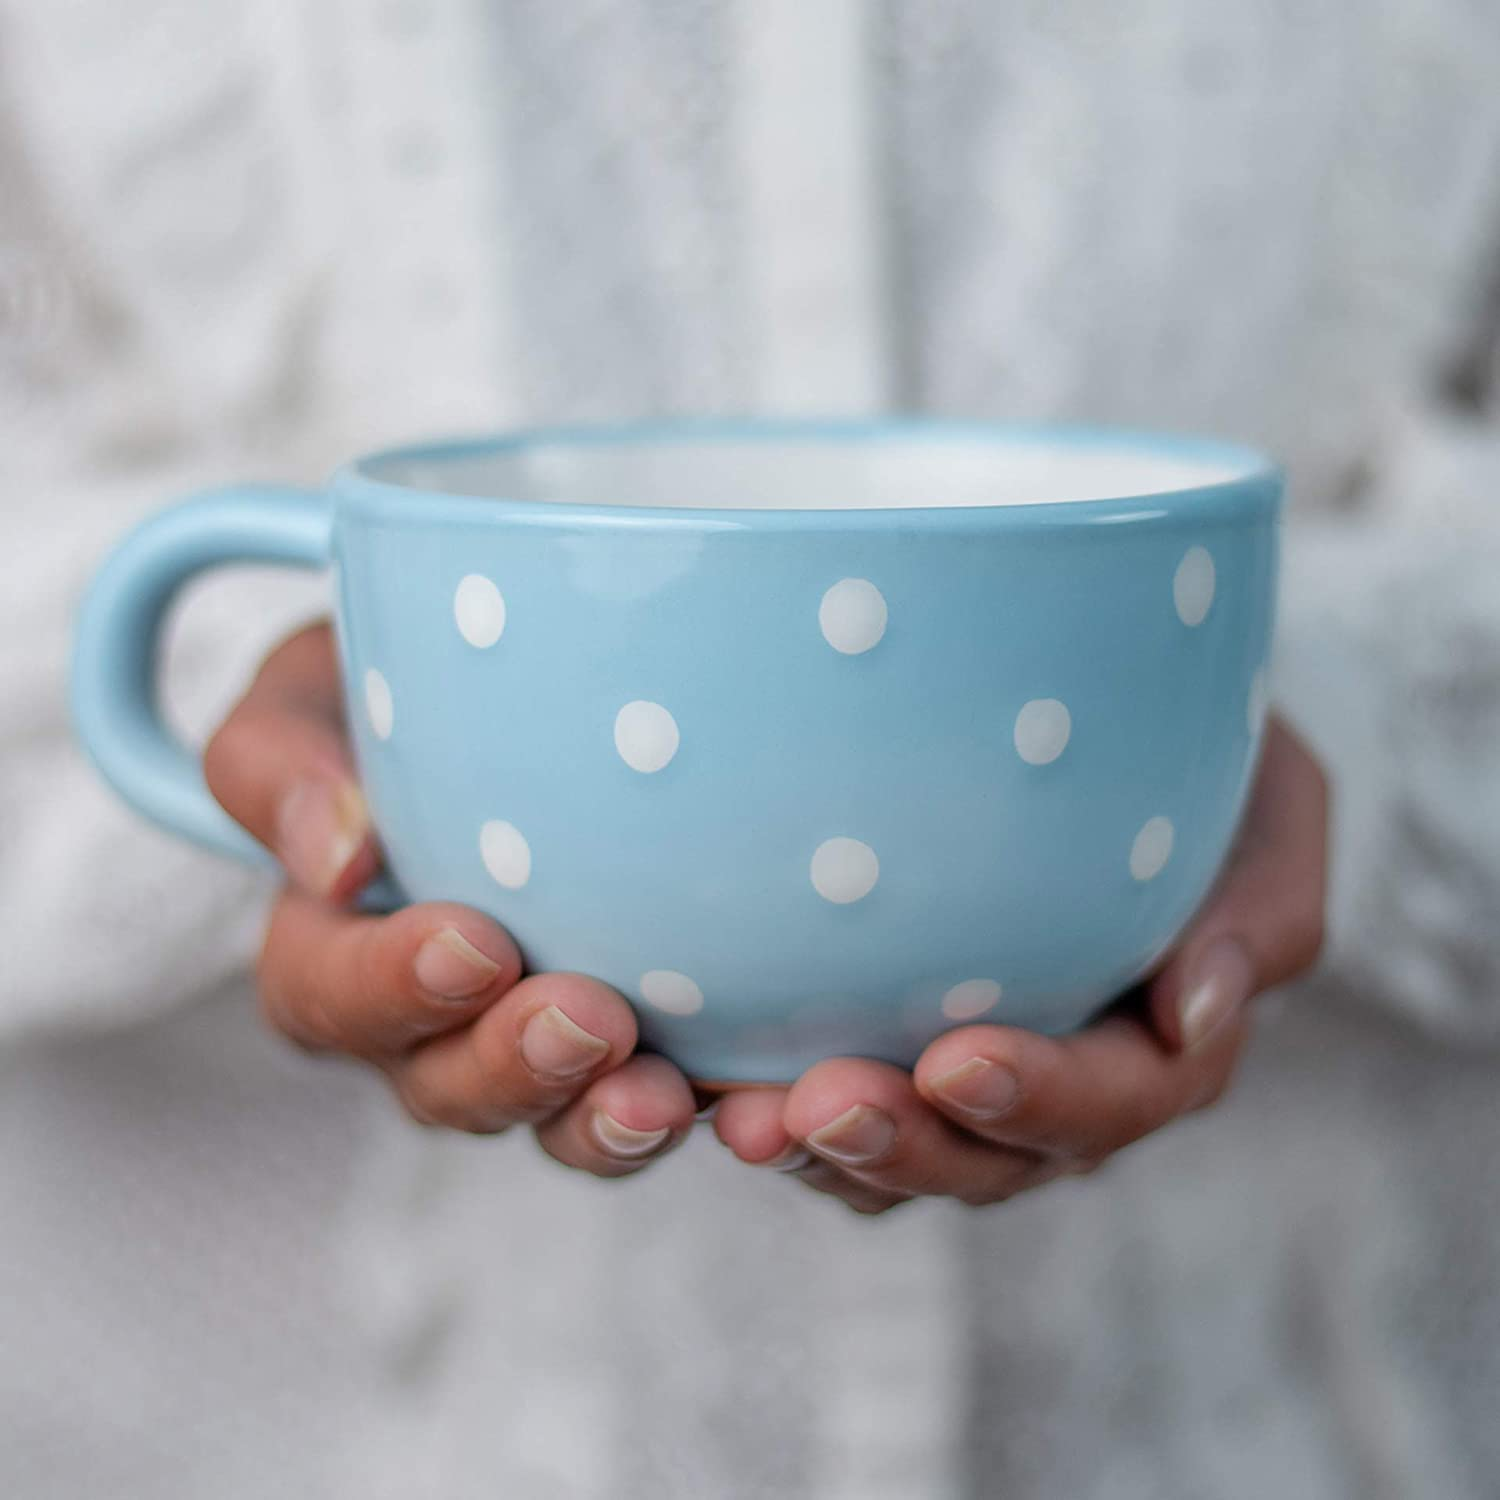 Handmade Ceramic Designer Light Blue and White Polka Dot Cup, Unique Extra Large 17.5oz/500ml Pottery Cappuccino, Coffee, Tea, Soup Mug   Housewarming Gift for Tea Lovers by City to Cottage